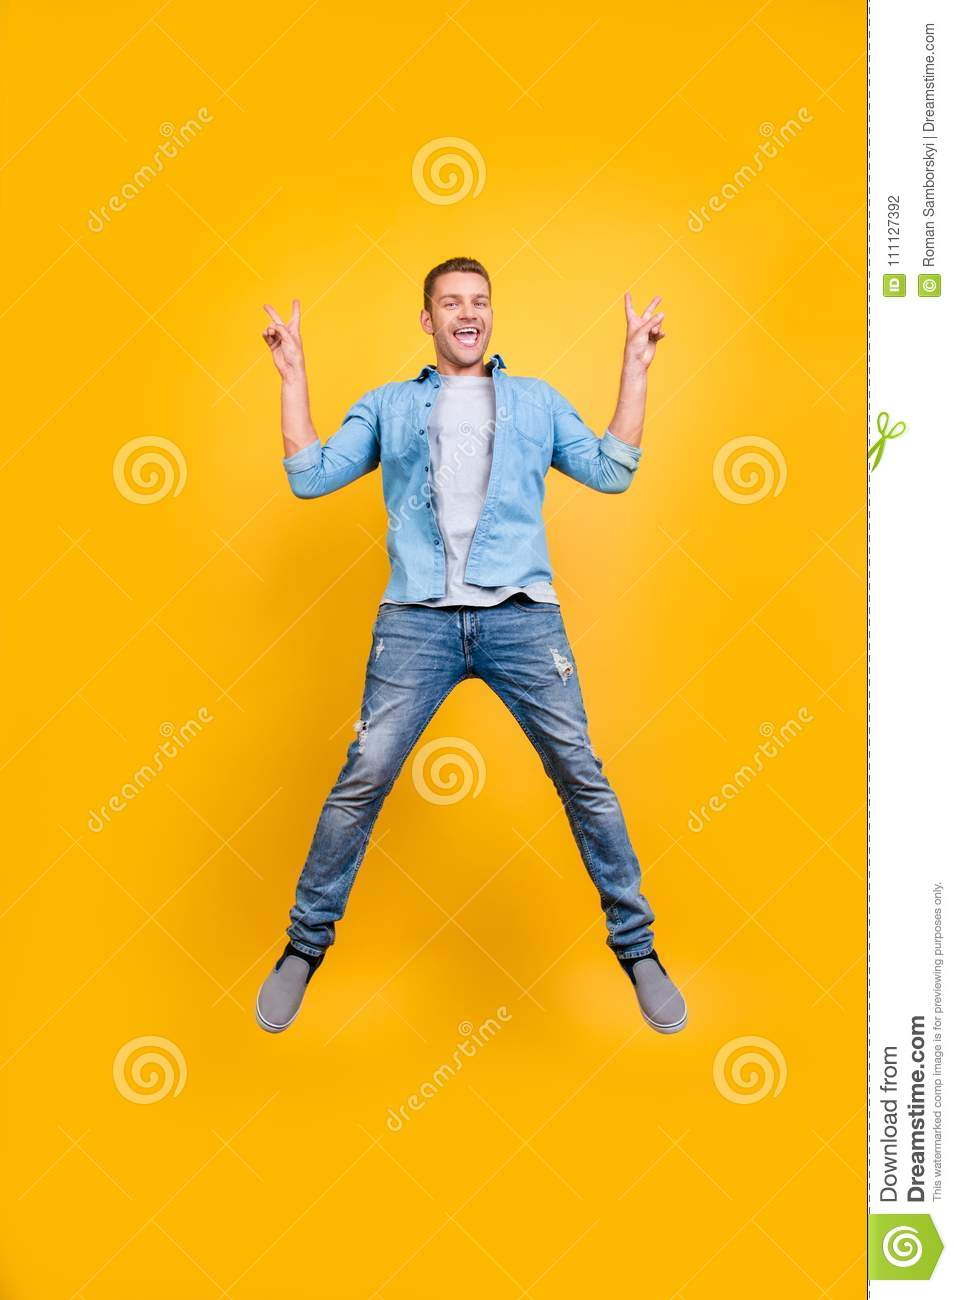 Go, mad! Glad, funny, funky guy in casual outfit full of energy